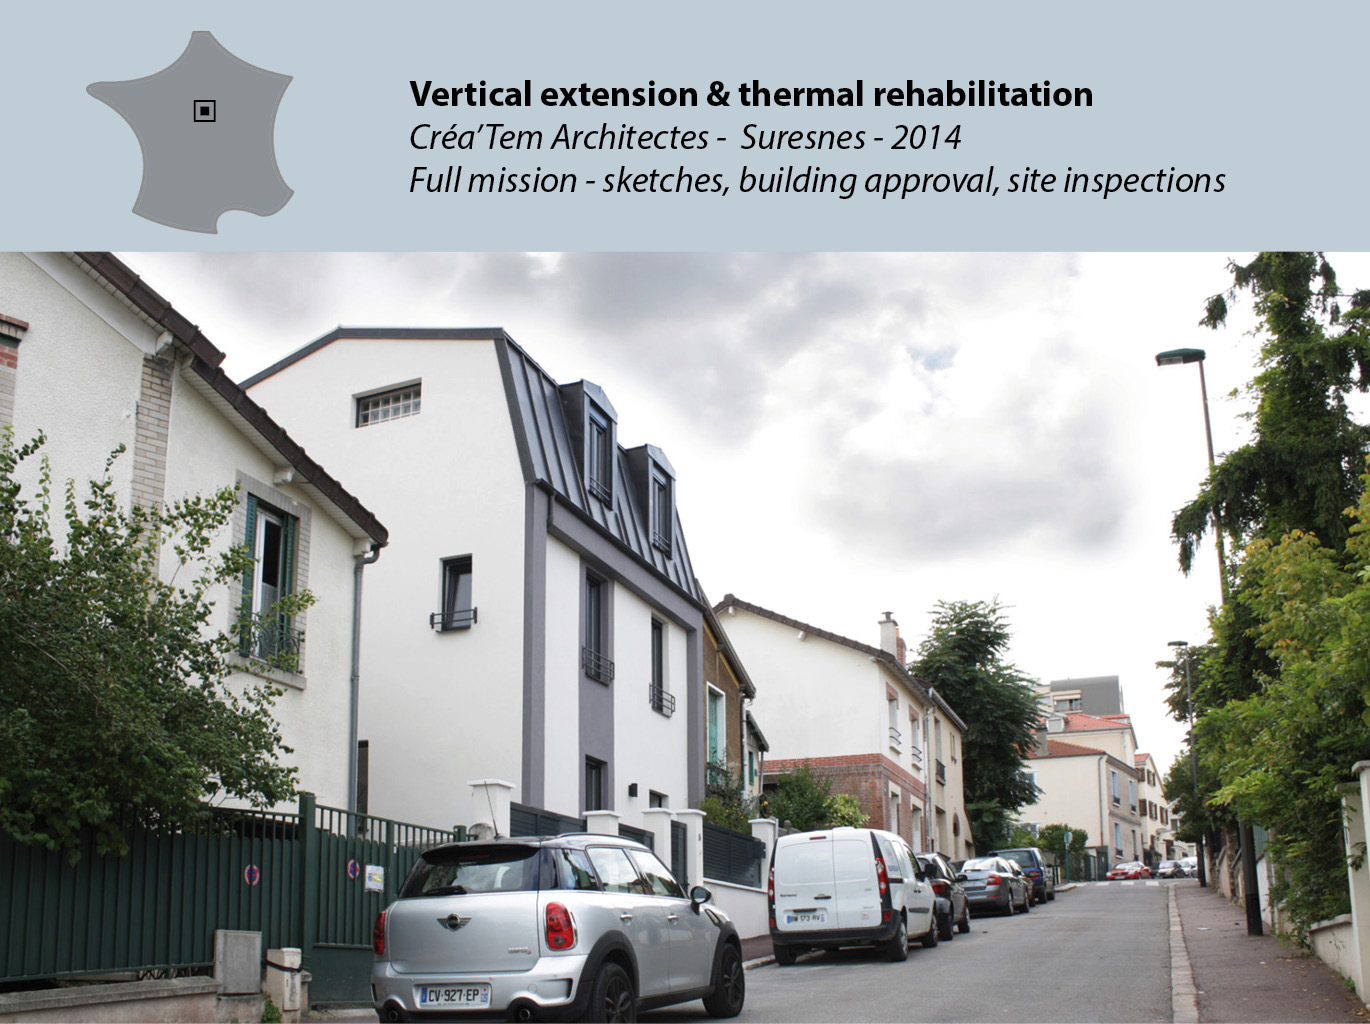 Vertical extension